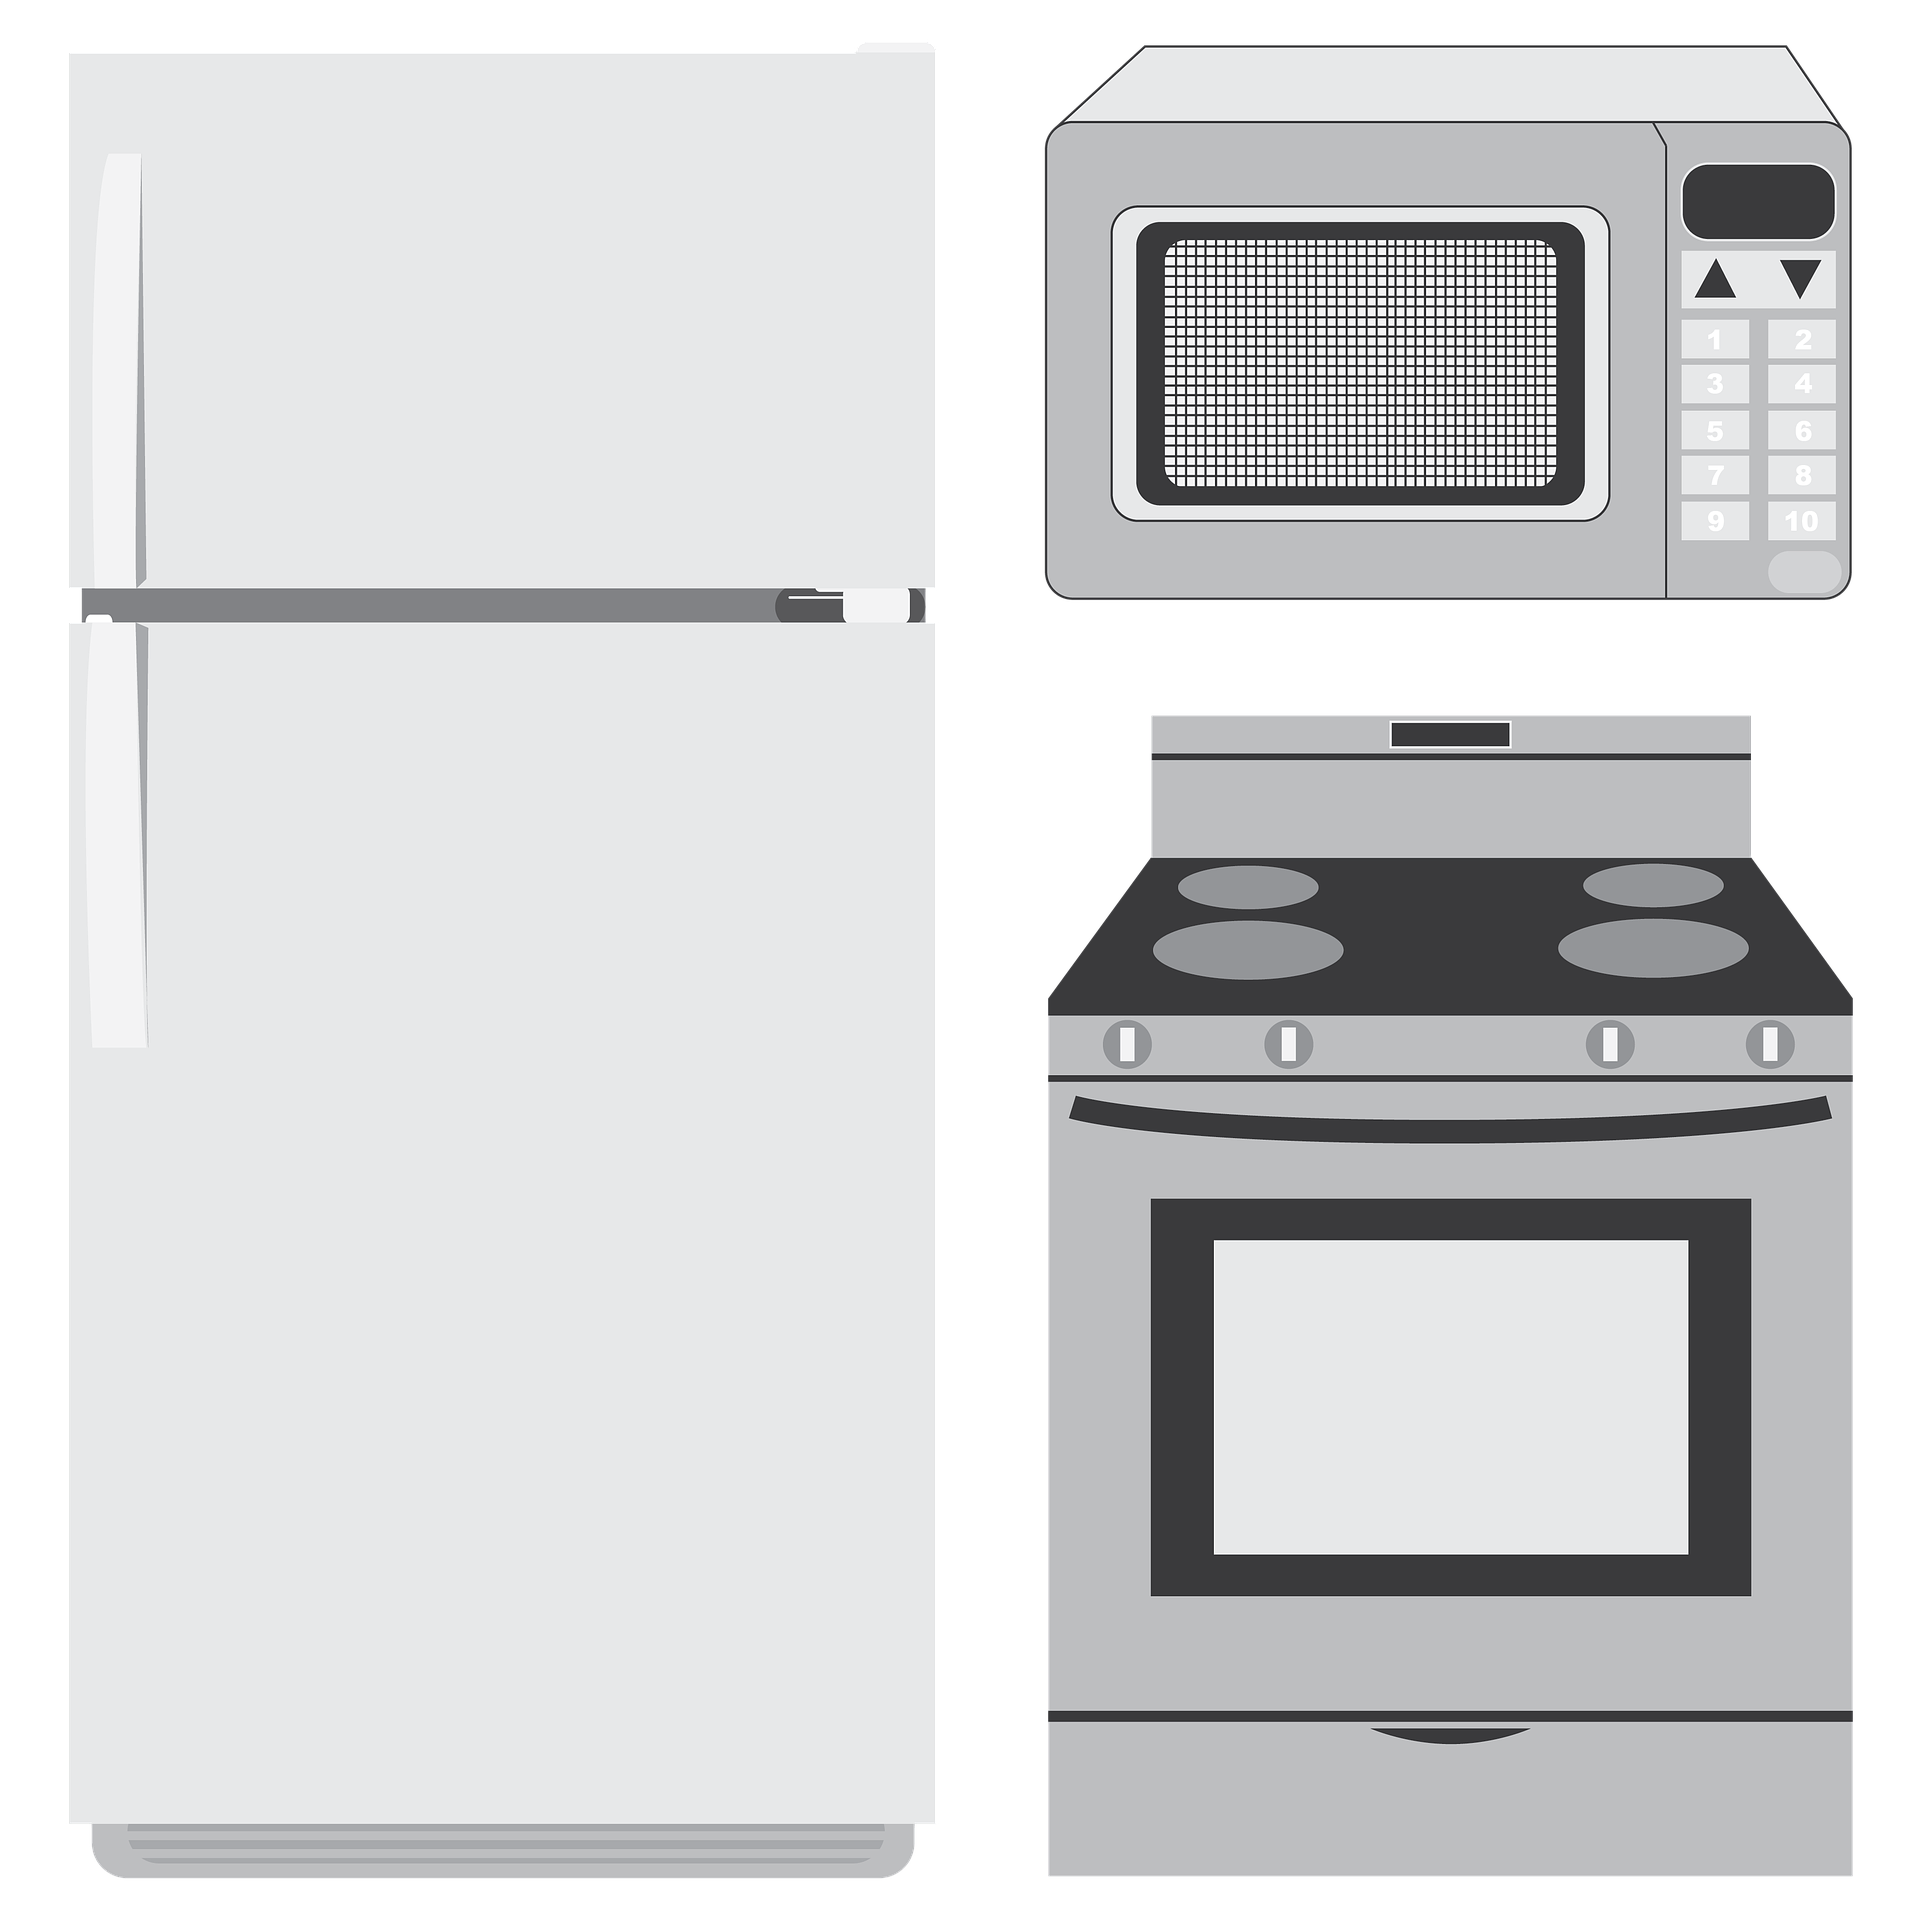 Fridge, microwave and oven